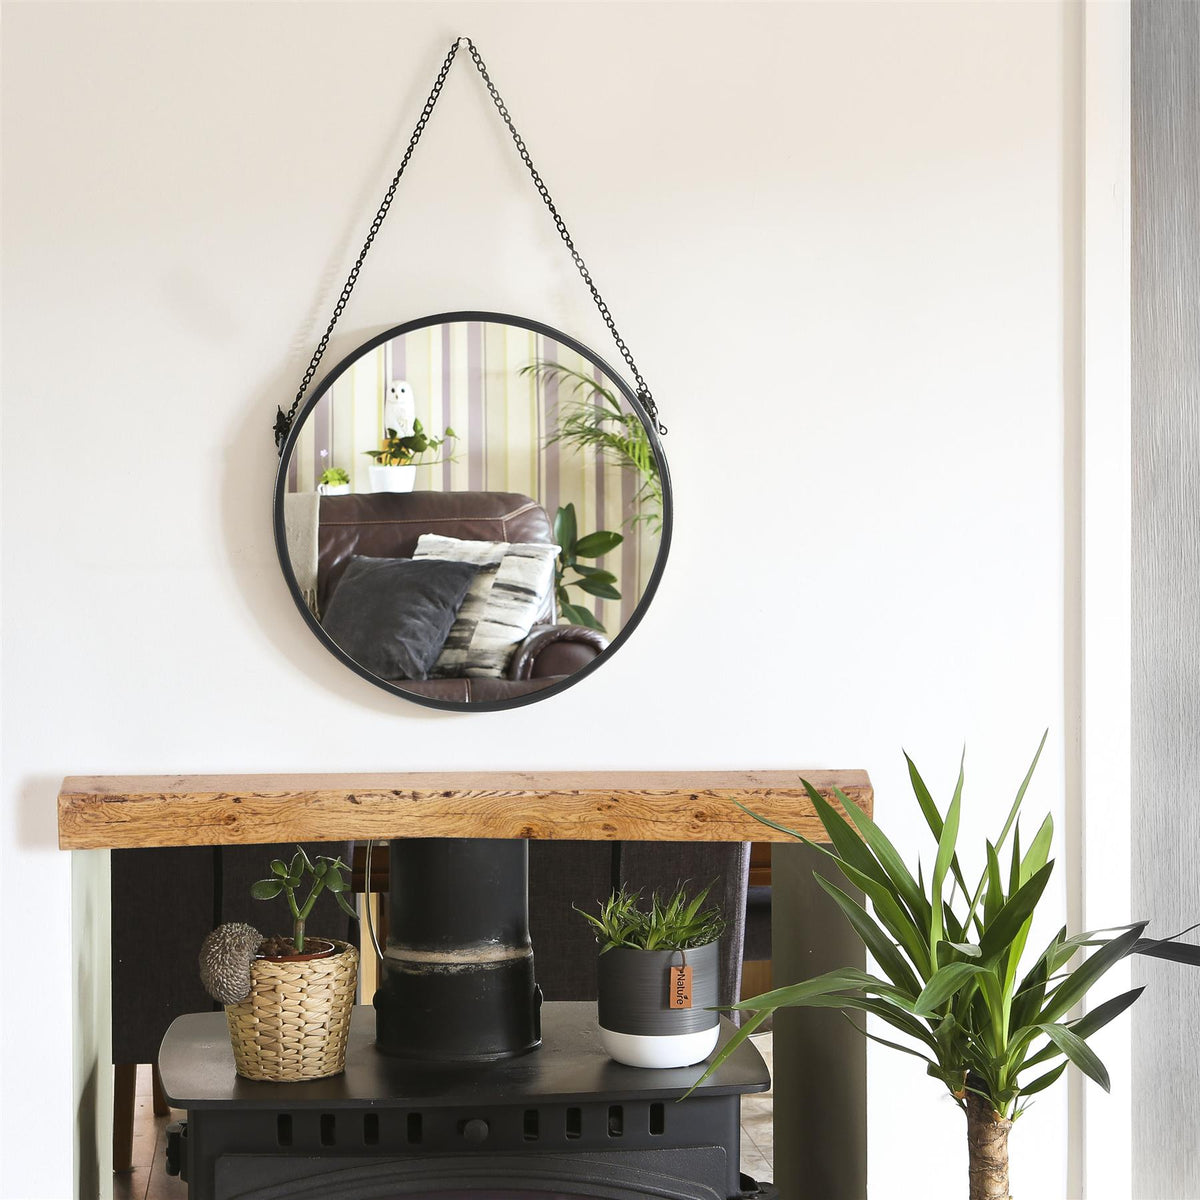 Harbour Housewares Round Framed Wall Mirror - Silver Chain - 40cm - Black